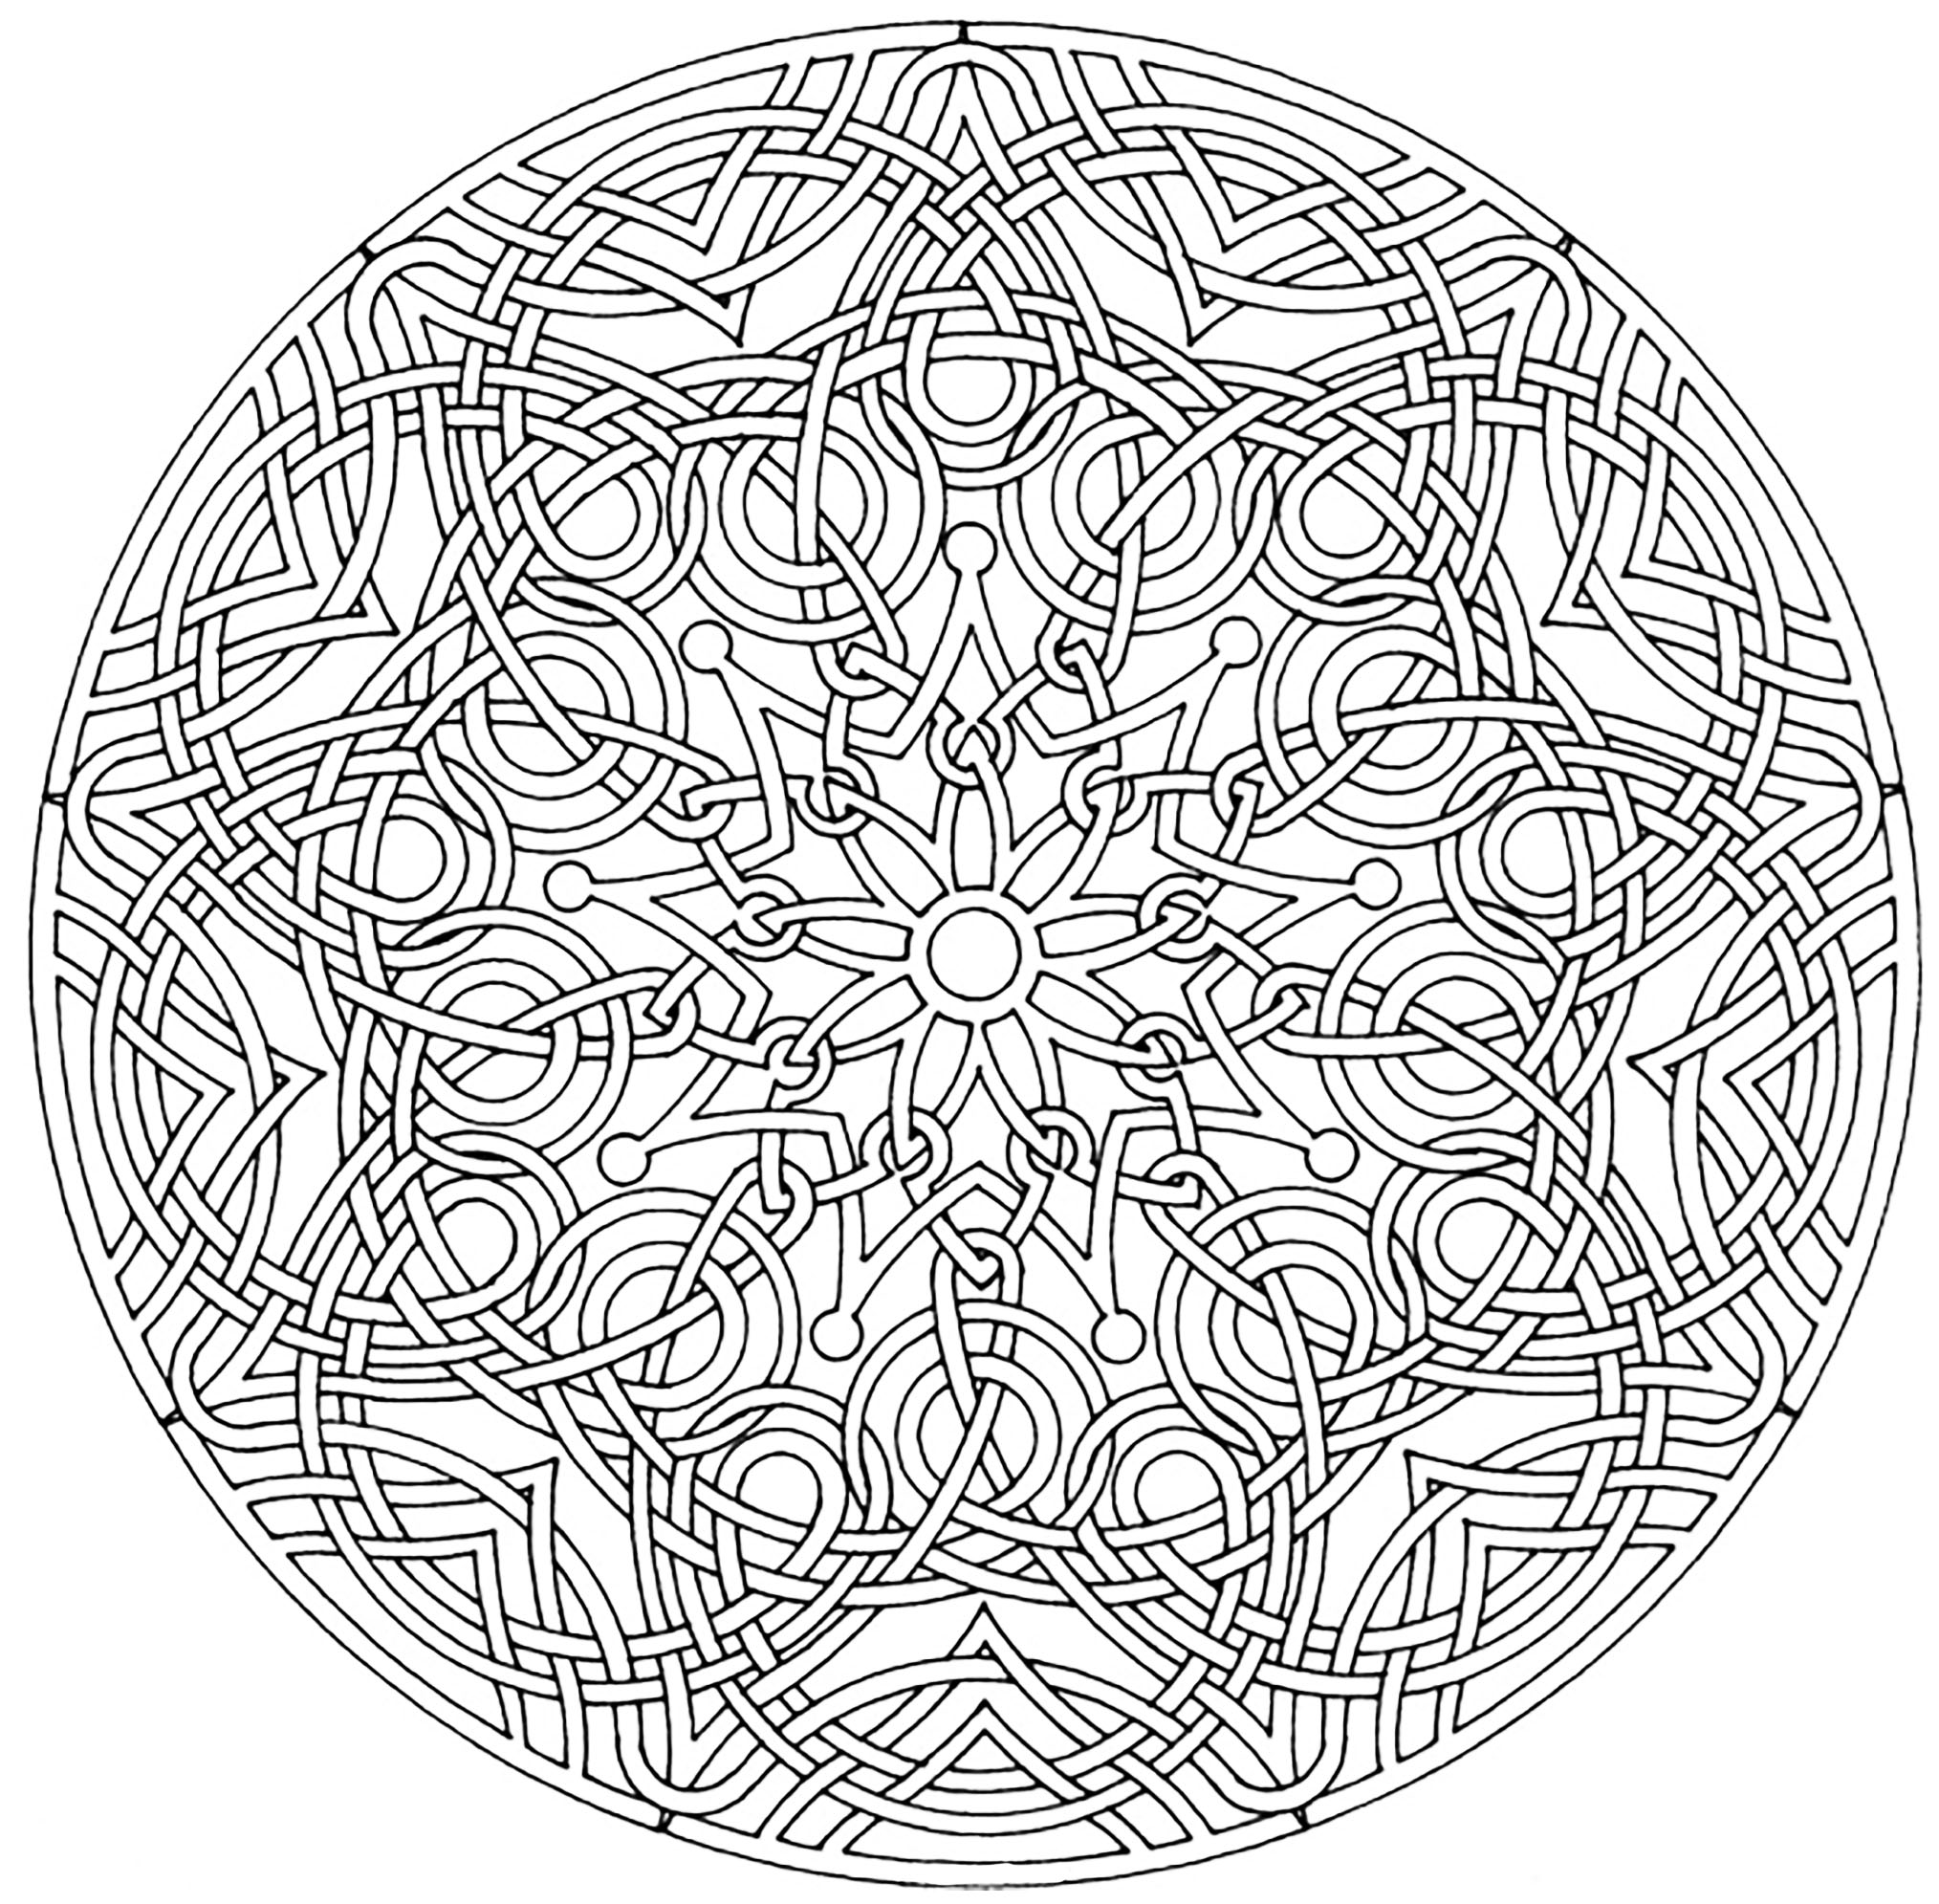 mandala coloring pages for adults mandala royal malas adult coloring pages mandala pages coloring adults for